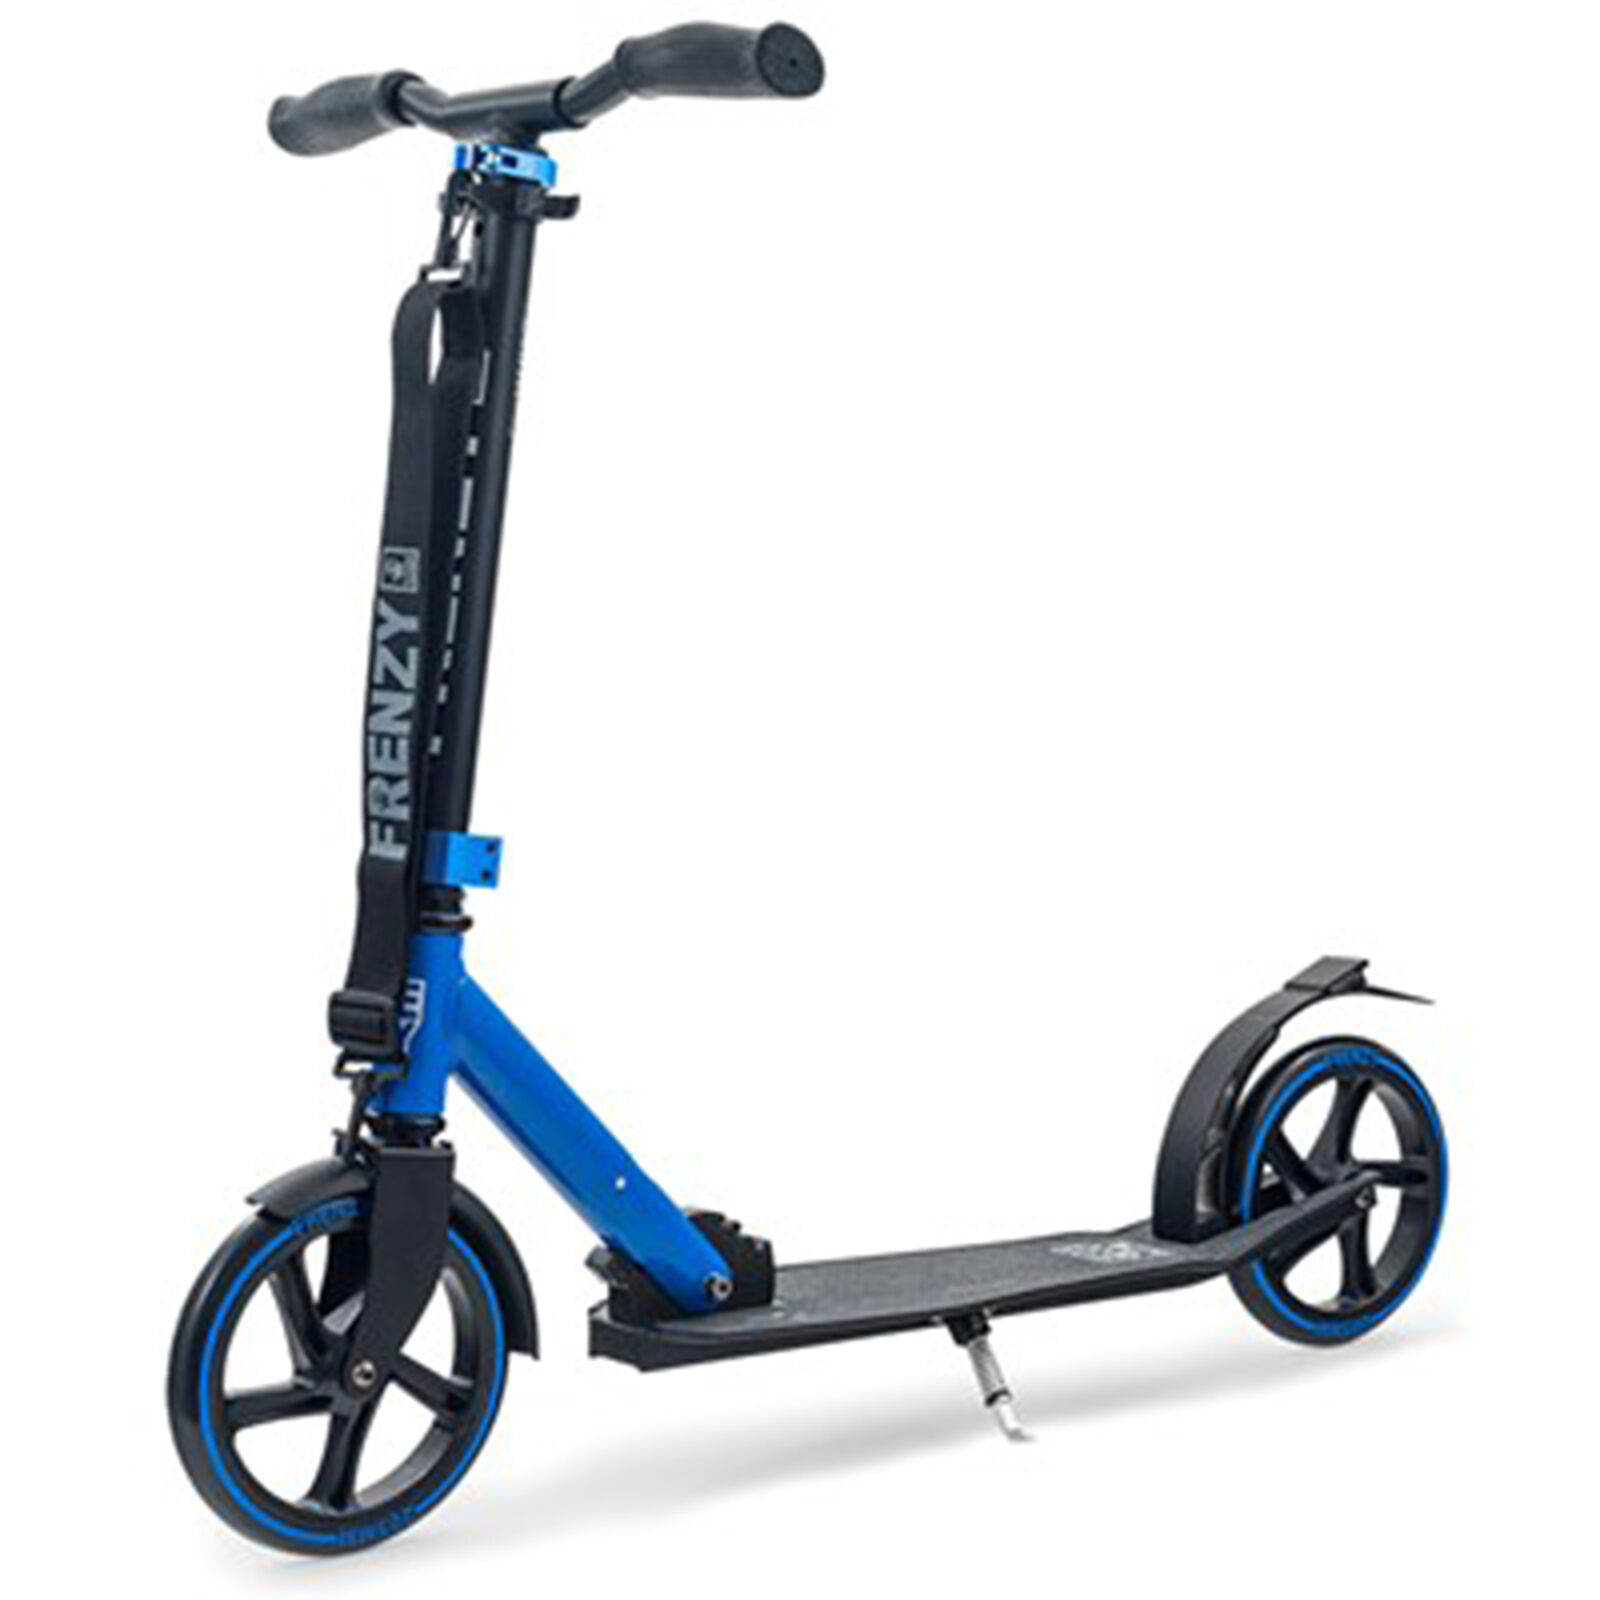 Frenzy Scooters 205mm Enfants Recréation Scooter, bleu